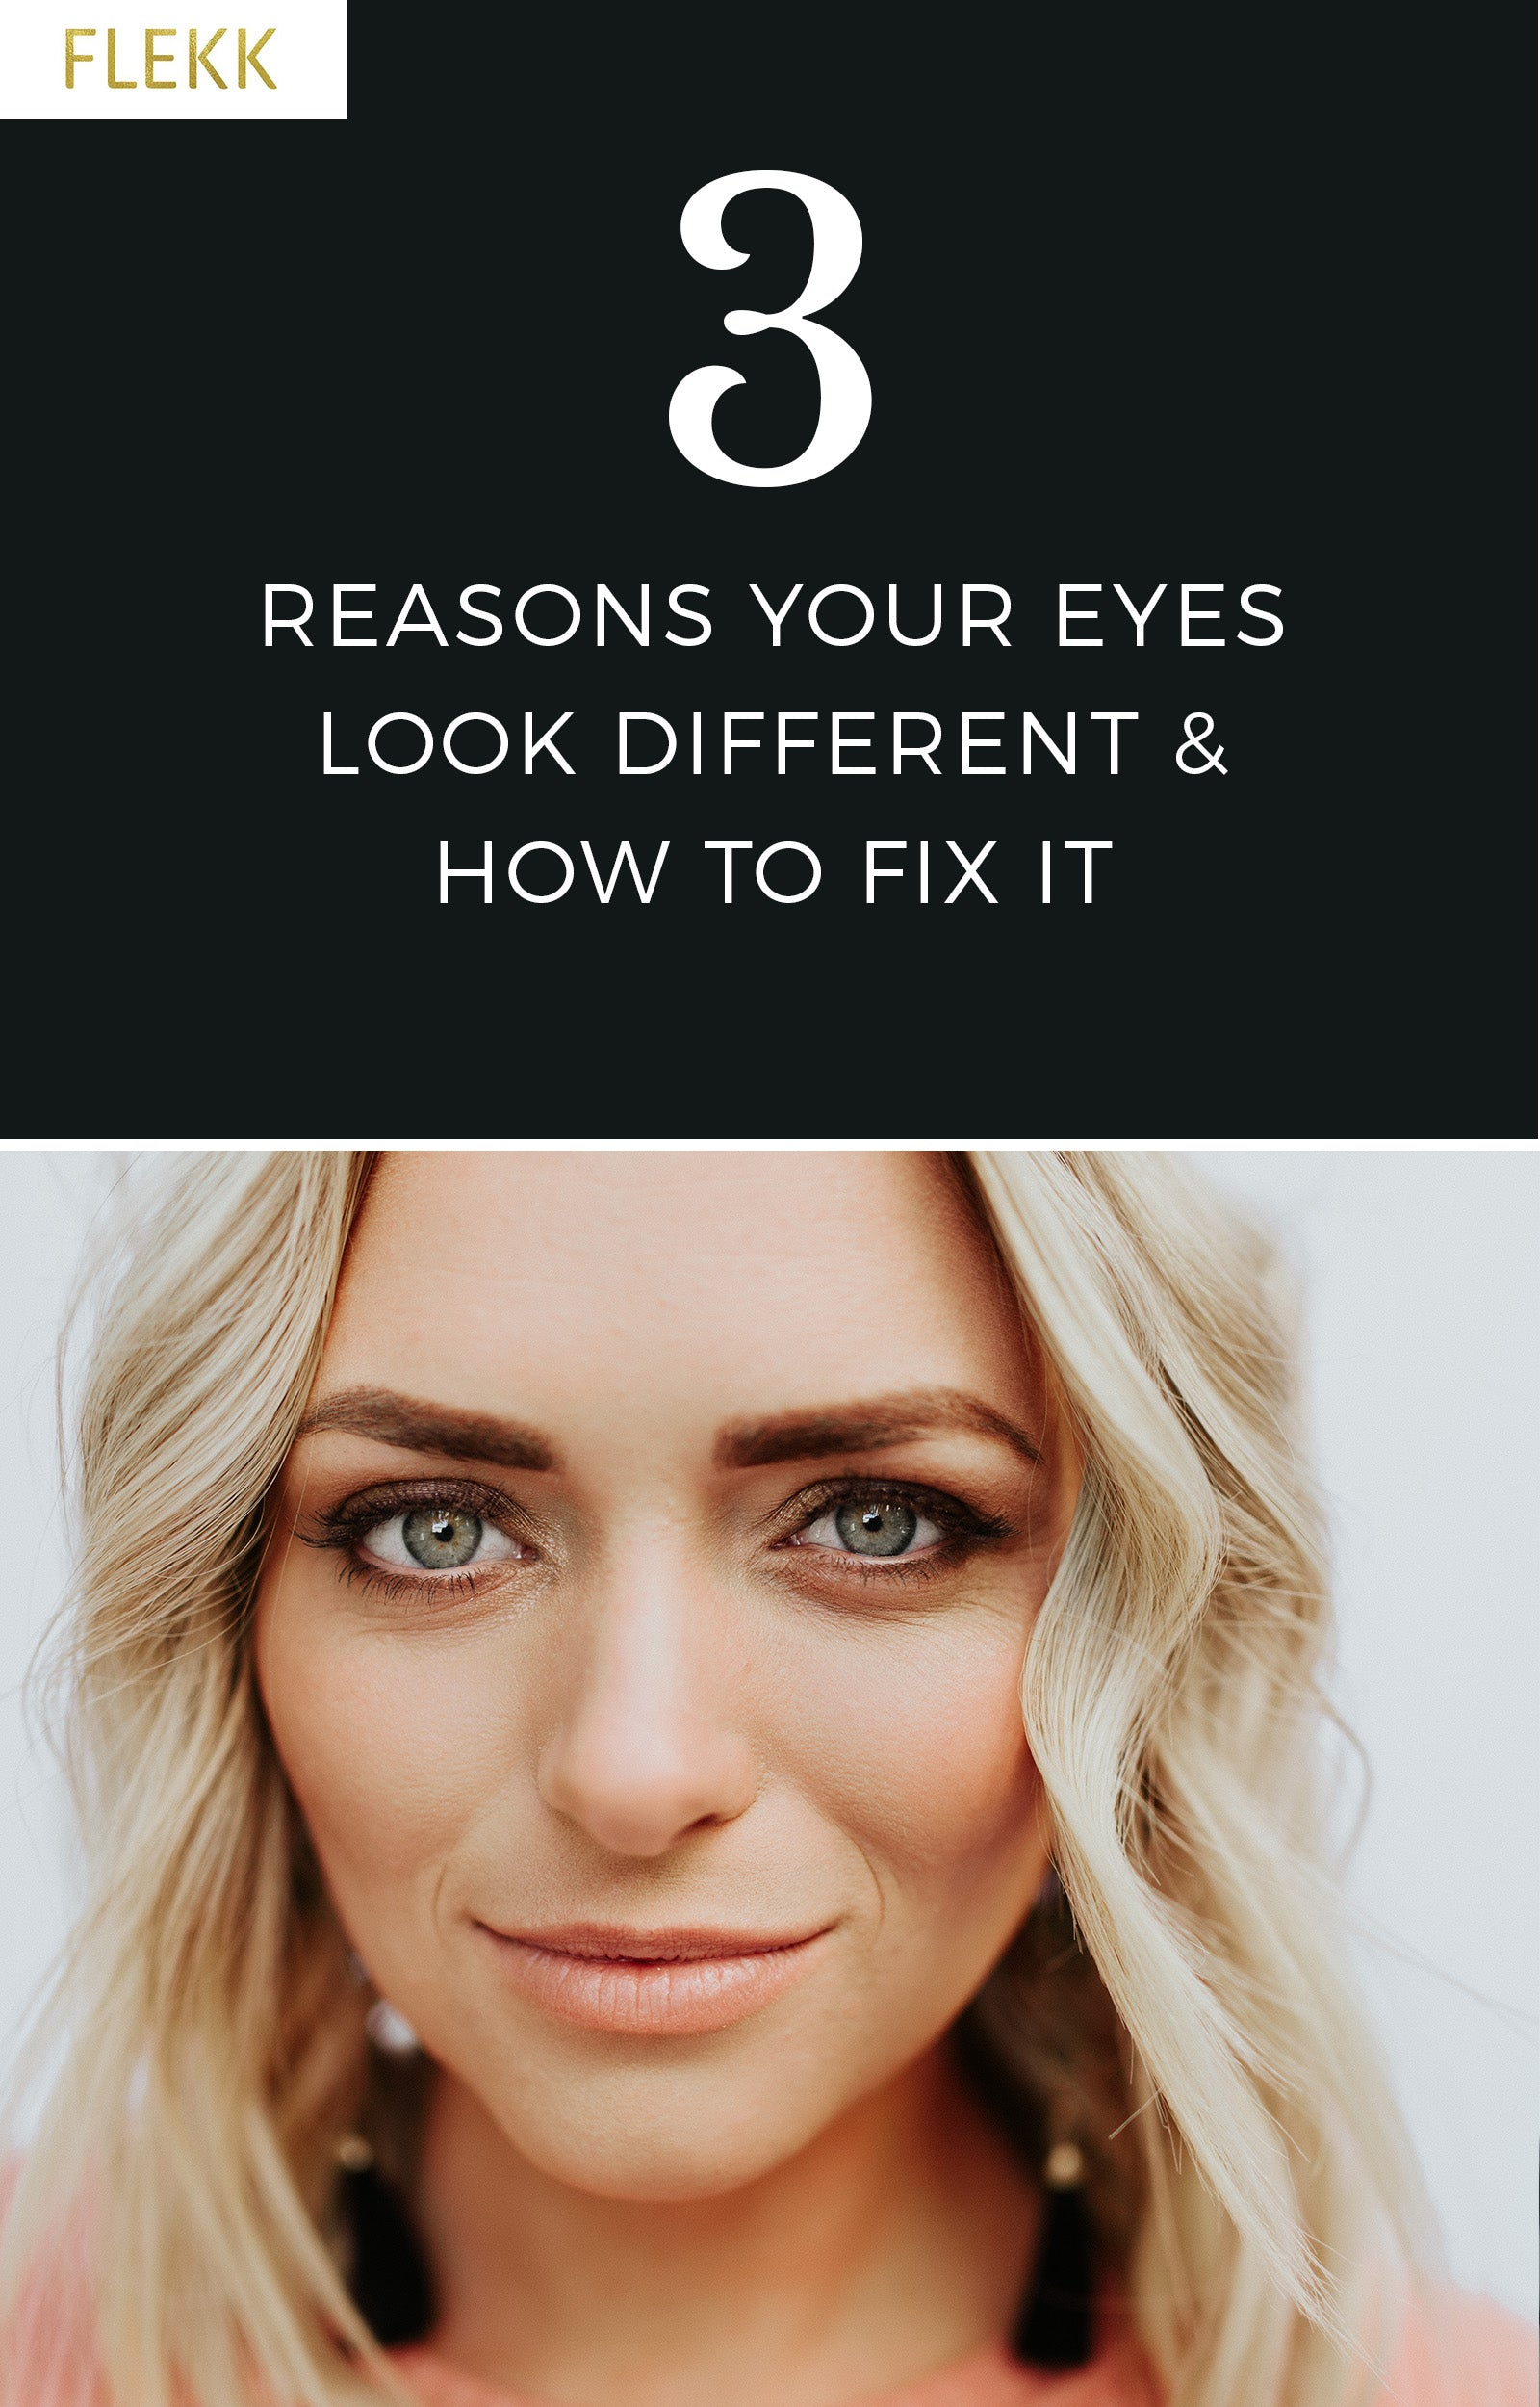 it is common for women to notice fine lines, wrinkles, sagging eyes, etc. Some will even say that one eye looks different than the other. Read on for why this happens and how you can easily restore balance to your eye makeup. #flekkcosmetics #eyemakeuptips #makeuphelp #eyeshadow #agingeyes #balance